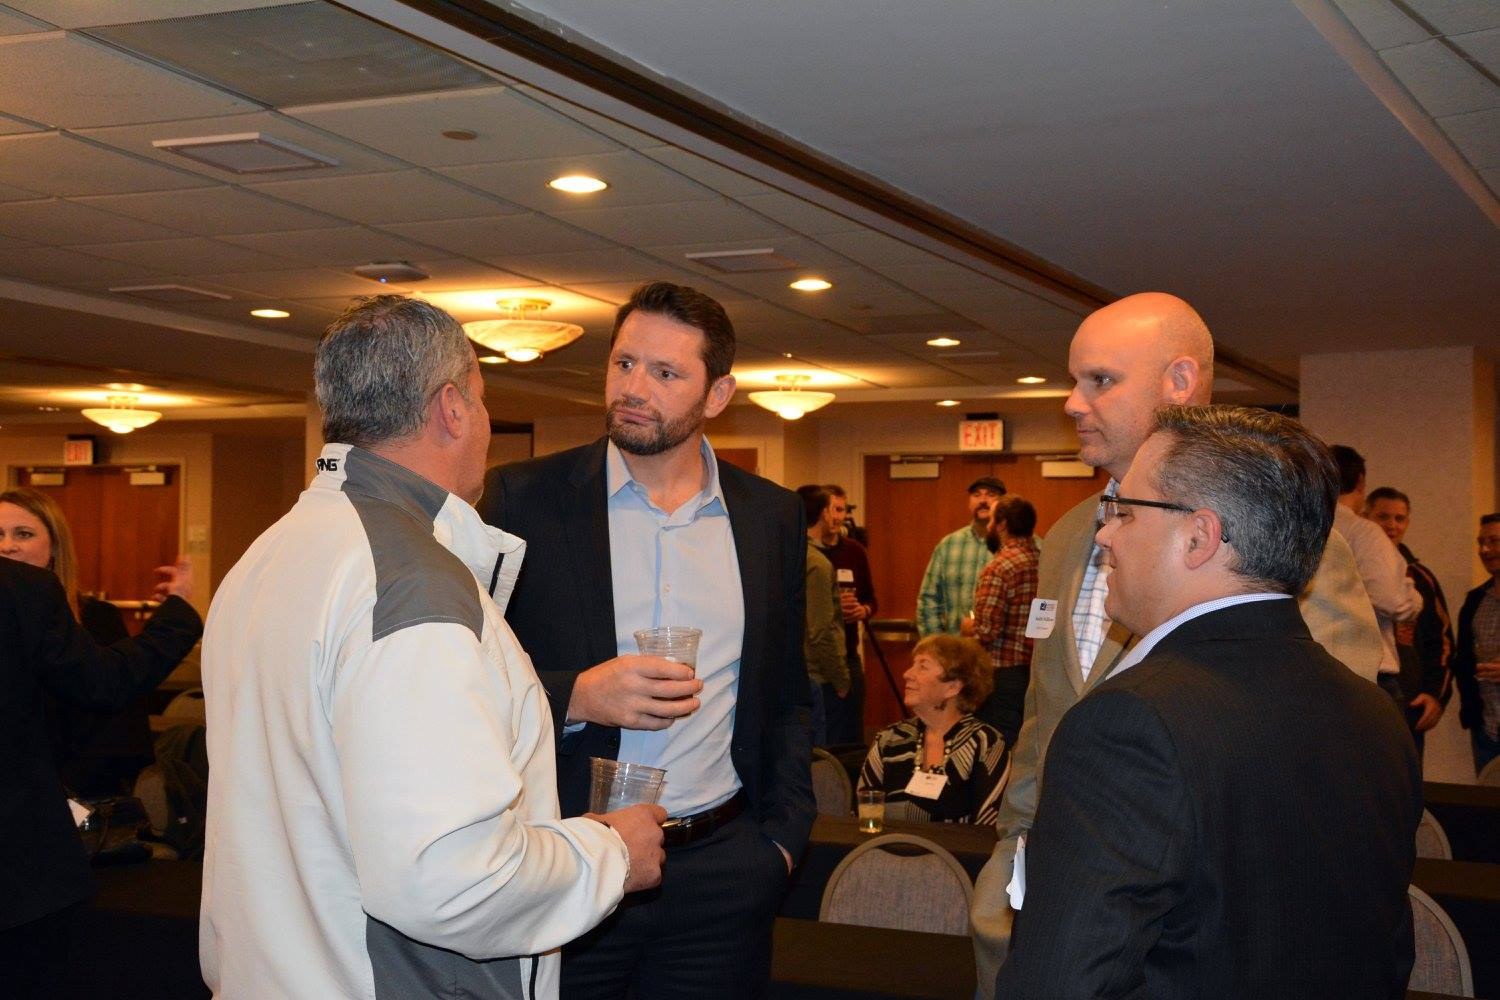 Kevin Dahl networks with another former NHLer in Jody Shelley. Photo Credit: Hockey Players in Business.